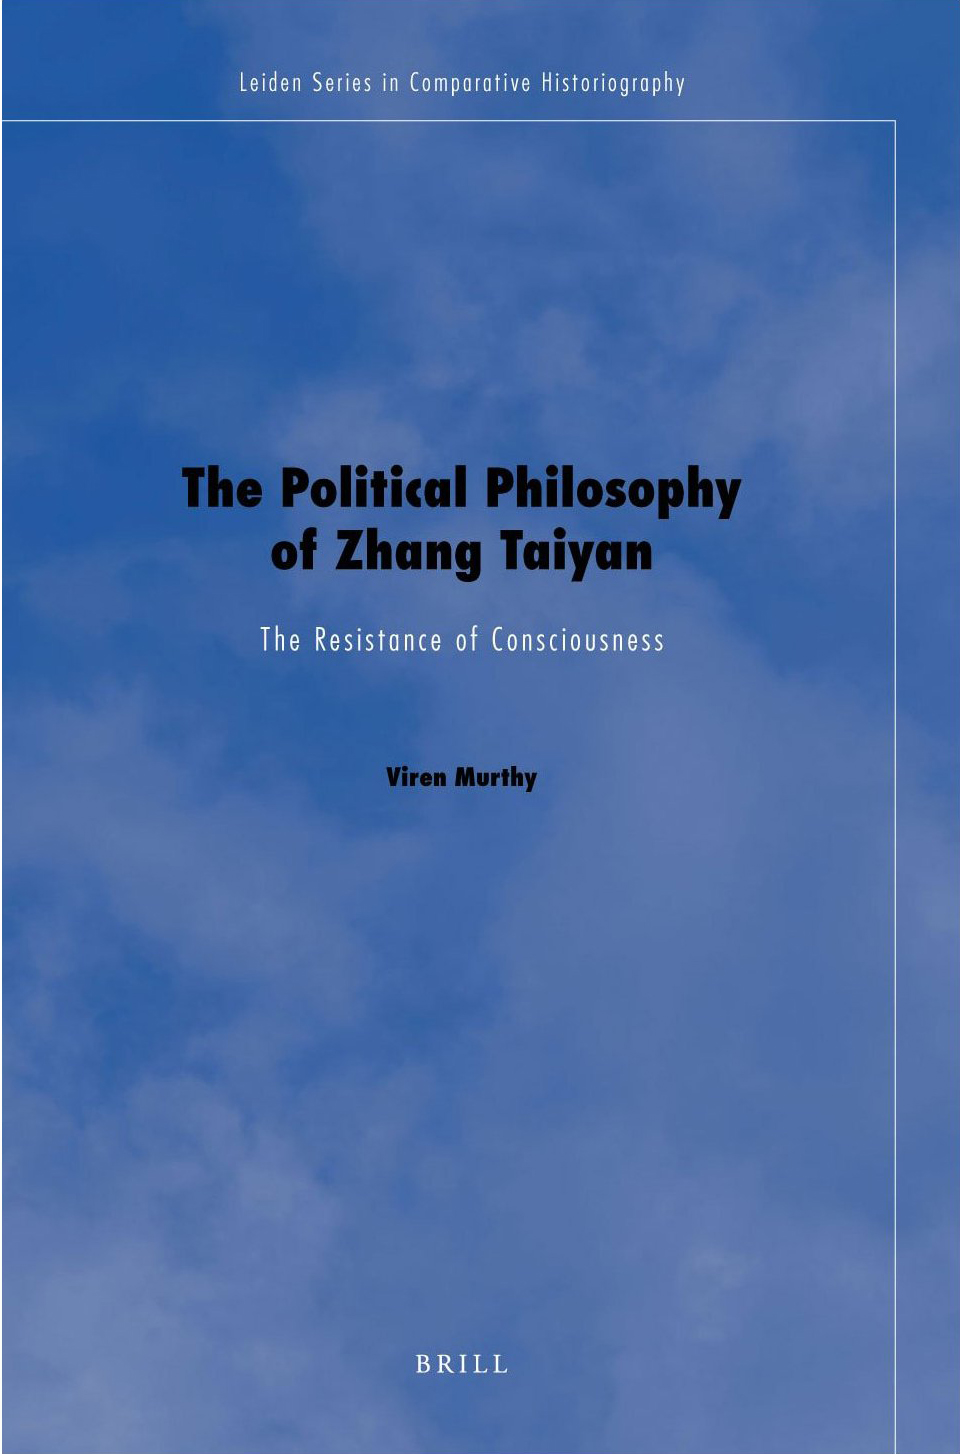 Book cover for The Political Philosophy of Zhang Taiyan